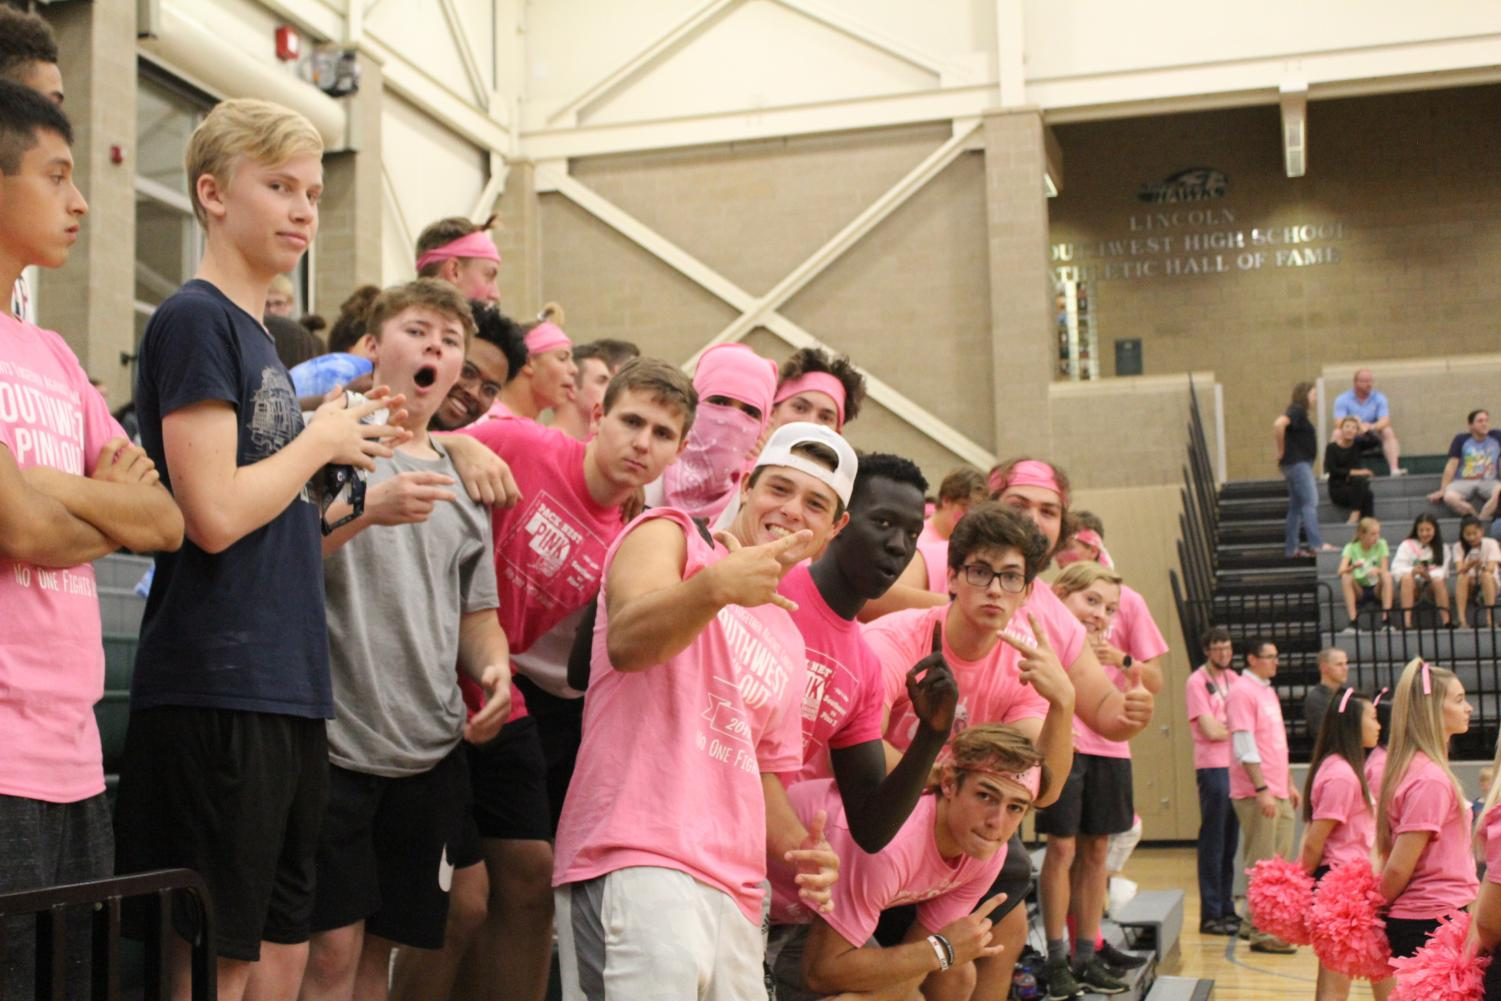 People dressed up for the pink-out varsity volleyball game.